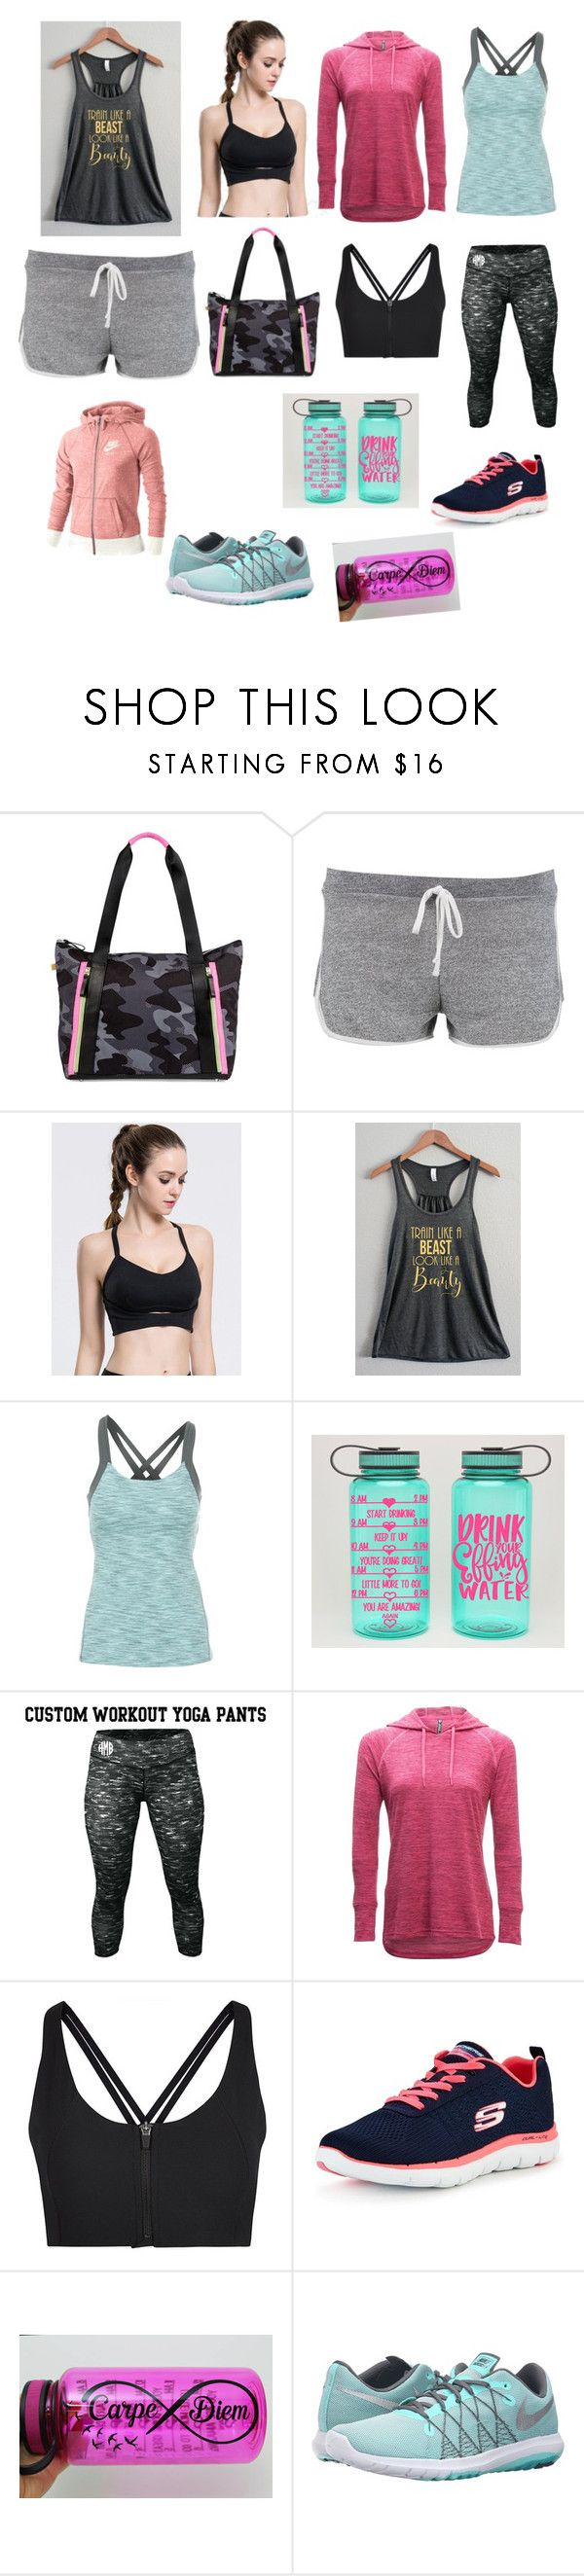 """Gym time"" by lolz-boyd ❤ liked on Polyvore featuring Monreal, Boohoo, Lucy, Kuhl, Sweaty Betty, Skechers and NIKE"